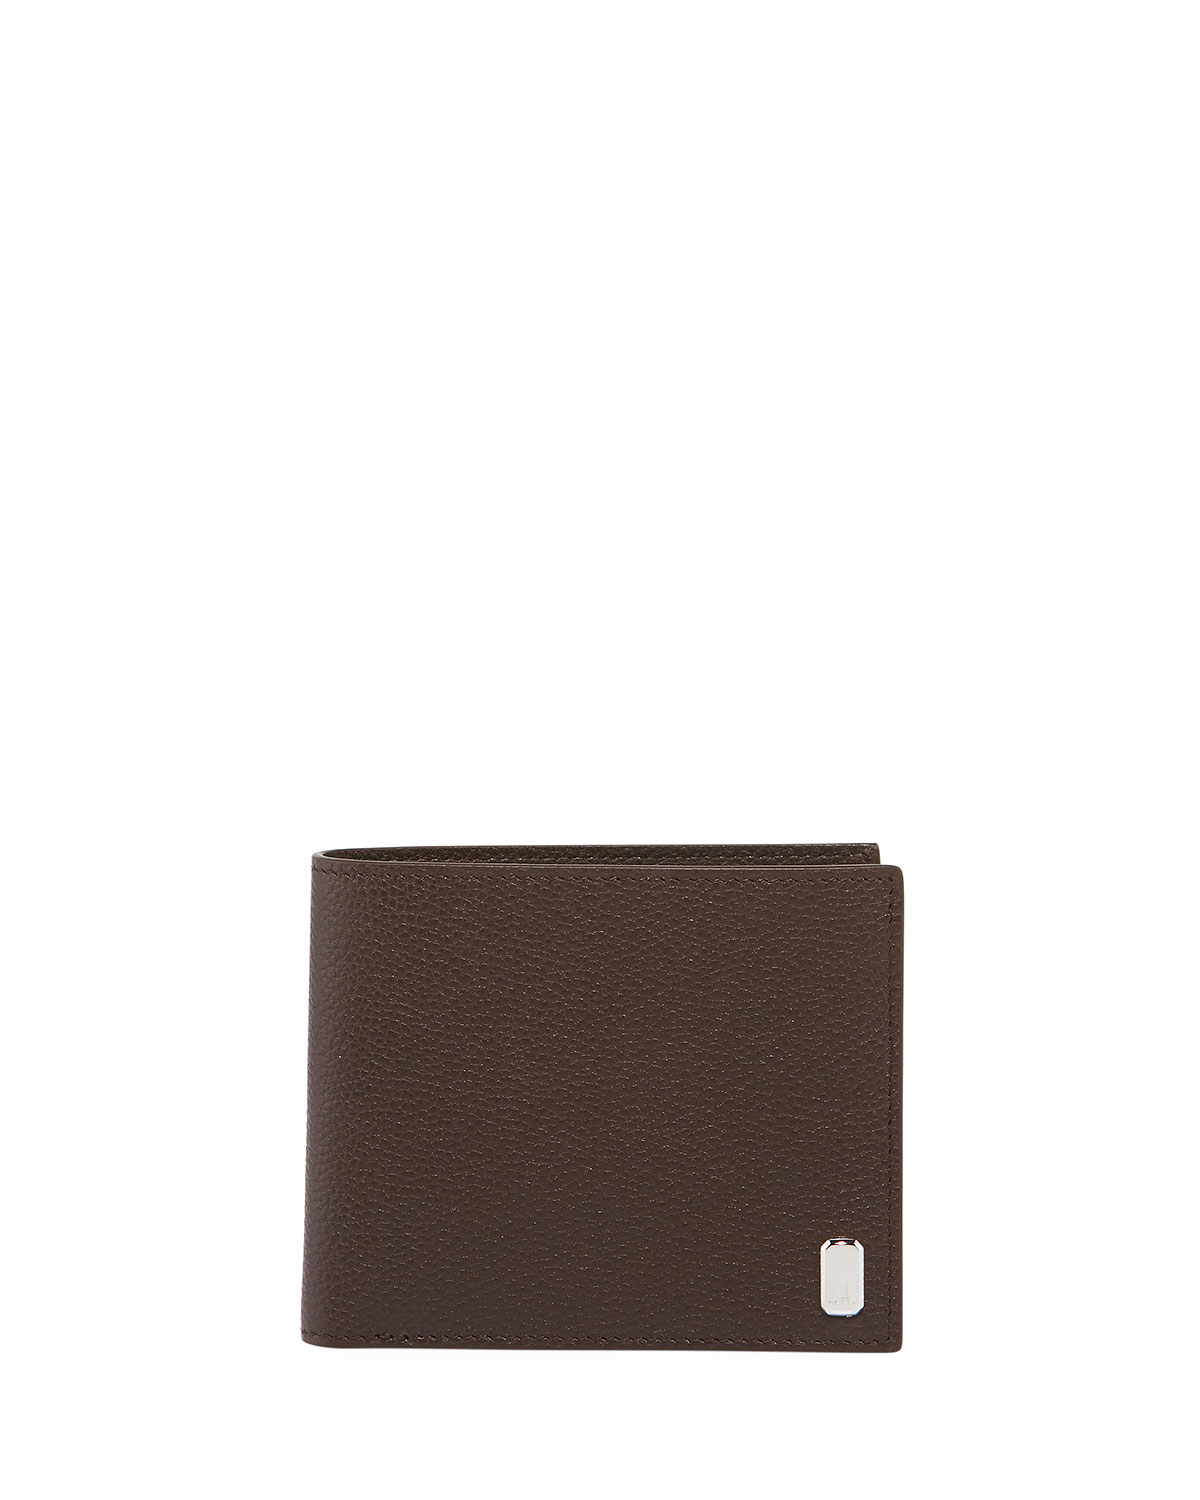 Dunhill Bags MEN'S BELGRAVE GRAINED LEATHER BILLFOLD